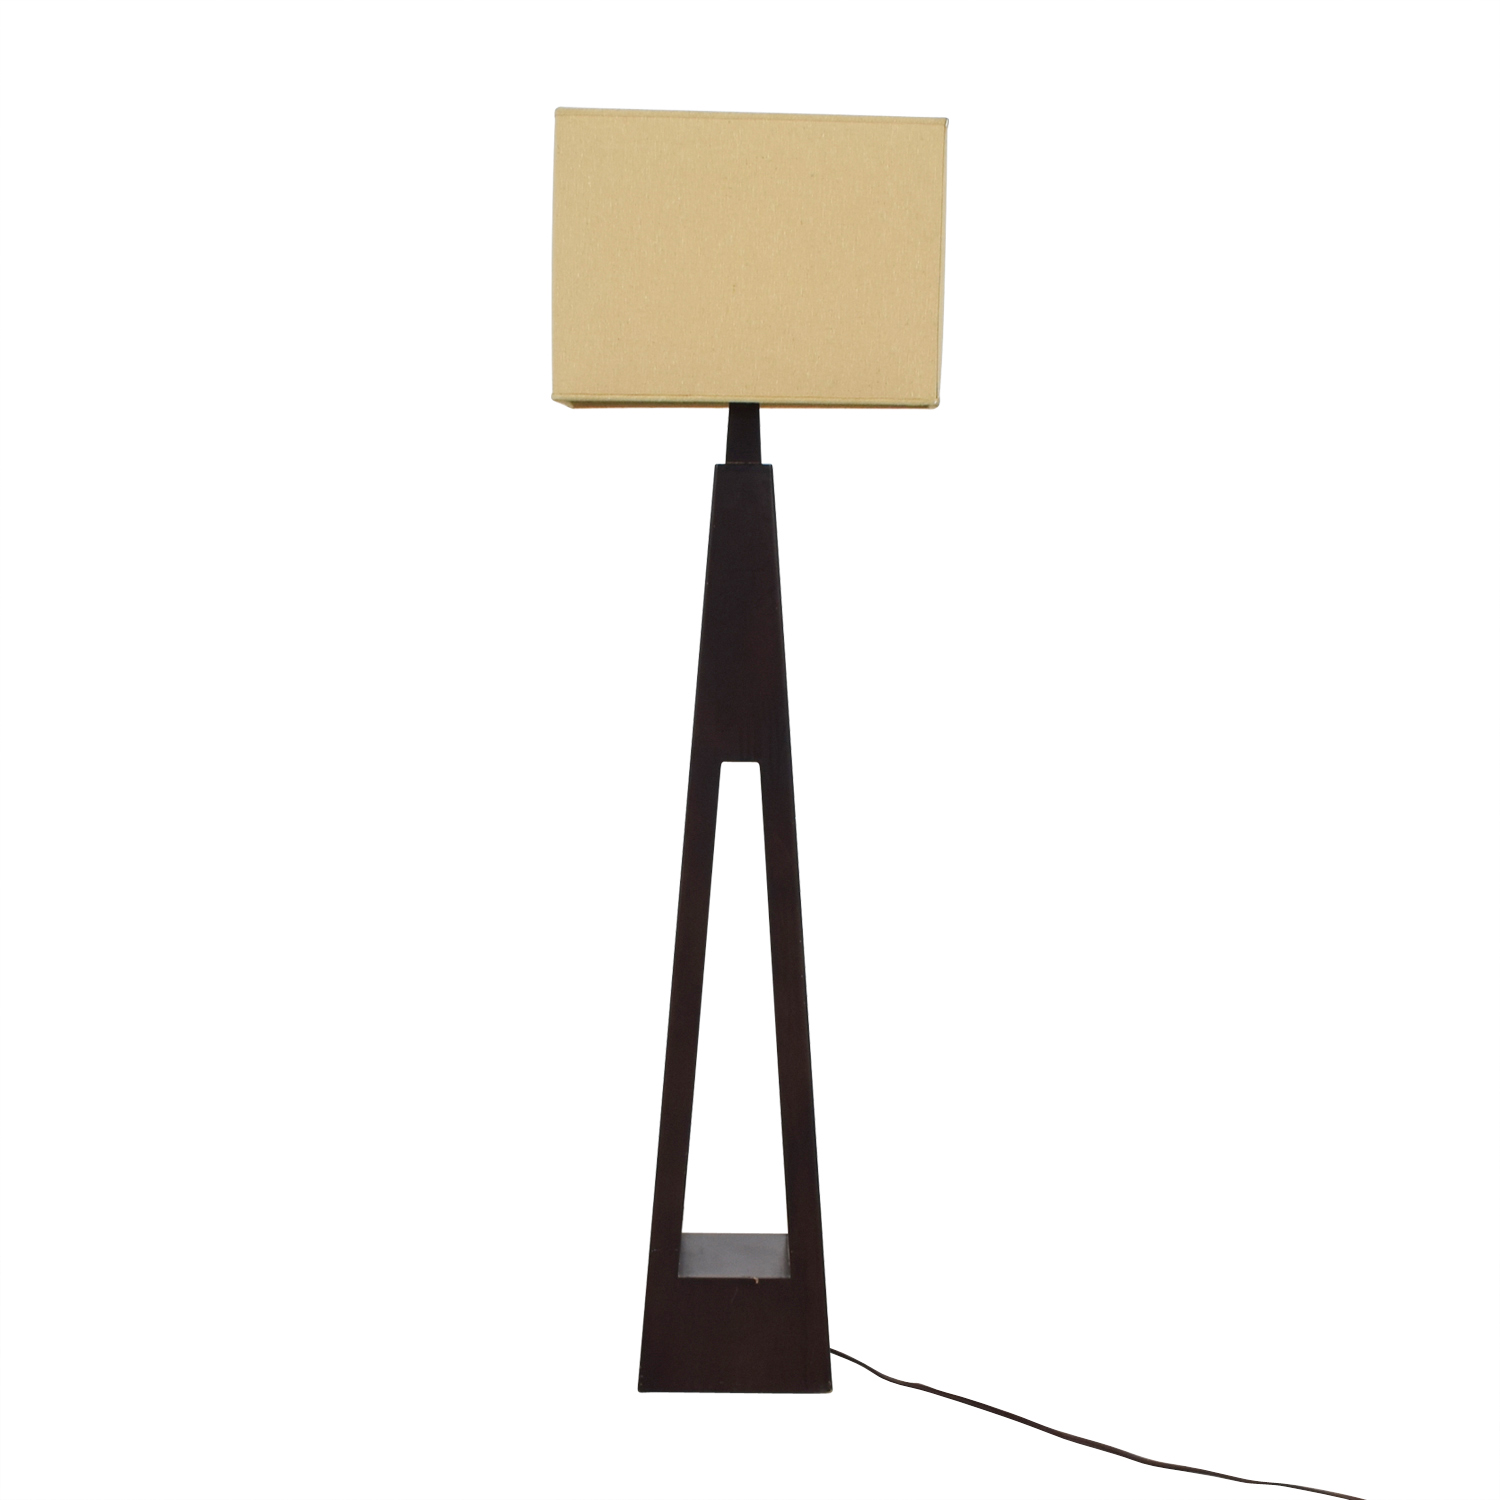 shop Triangular Wood Base Floor Lamp online